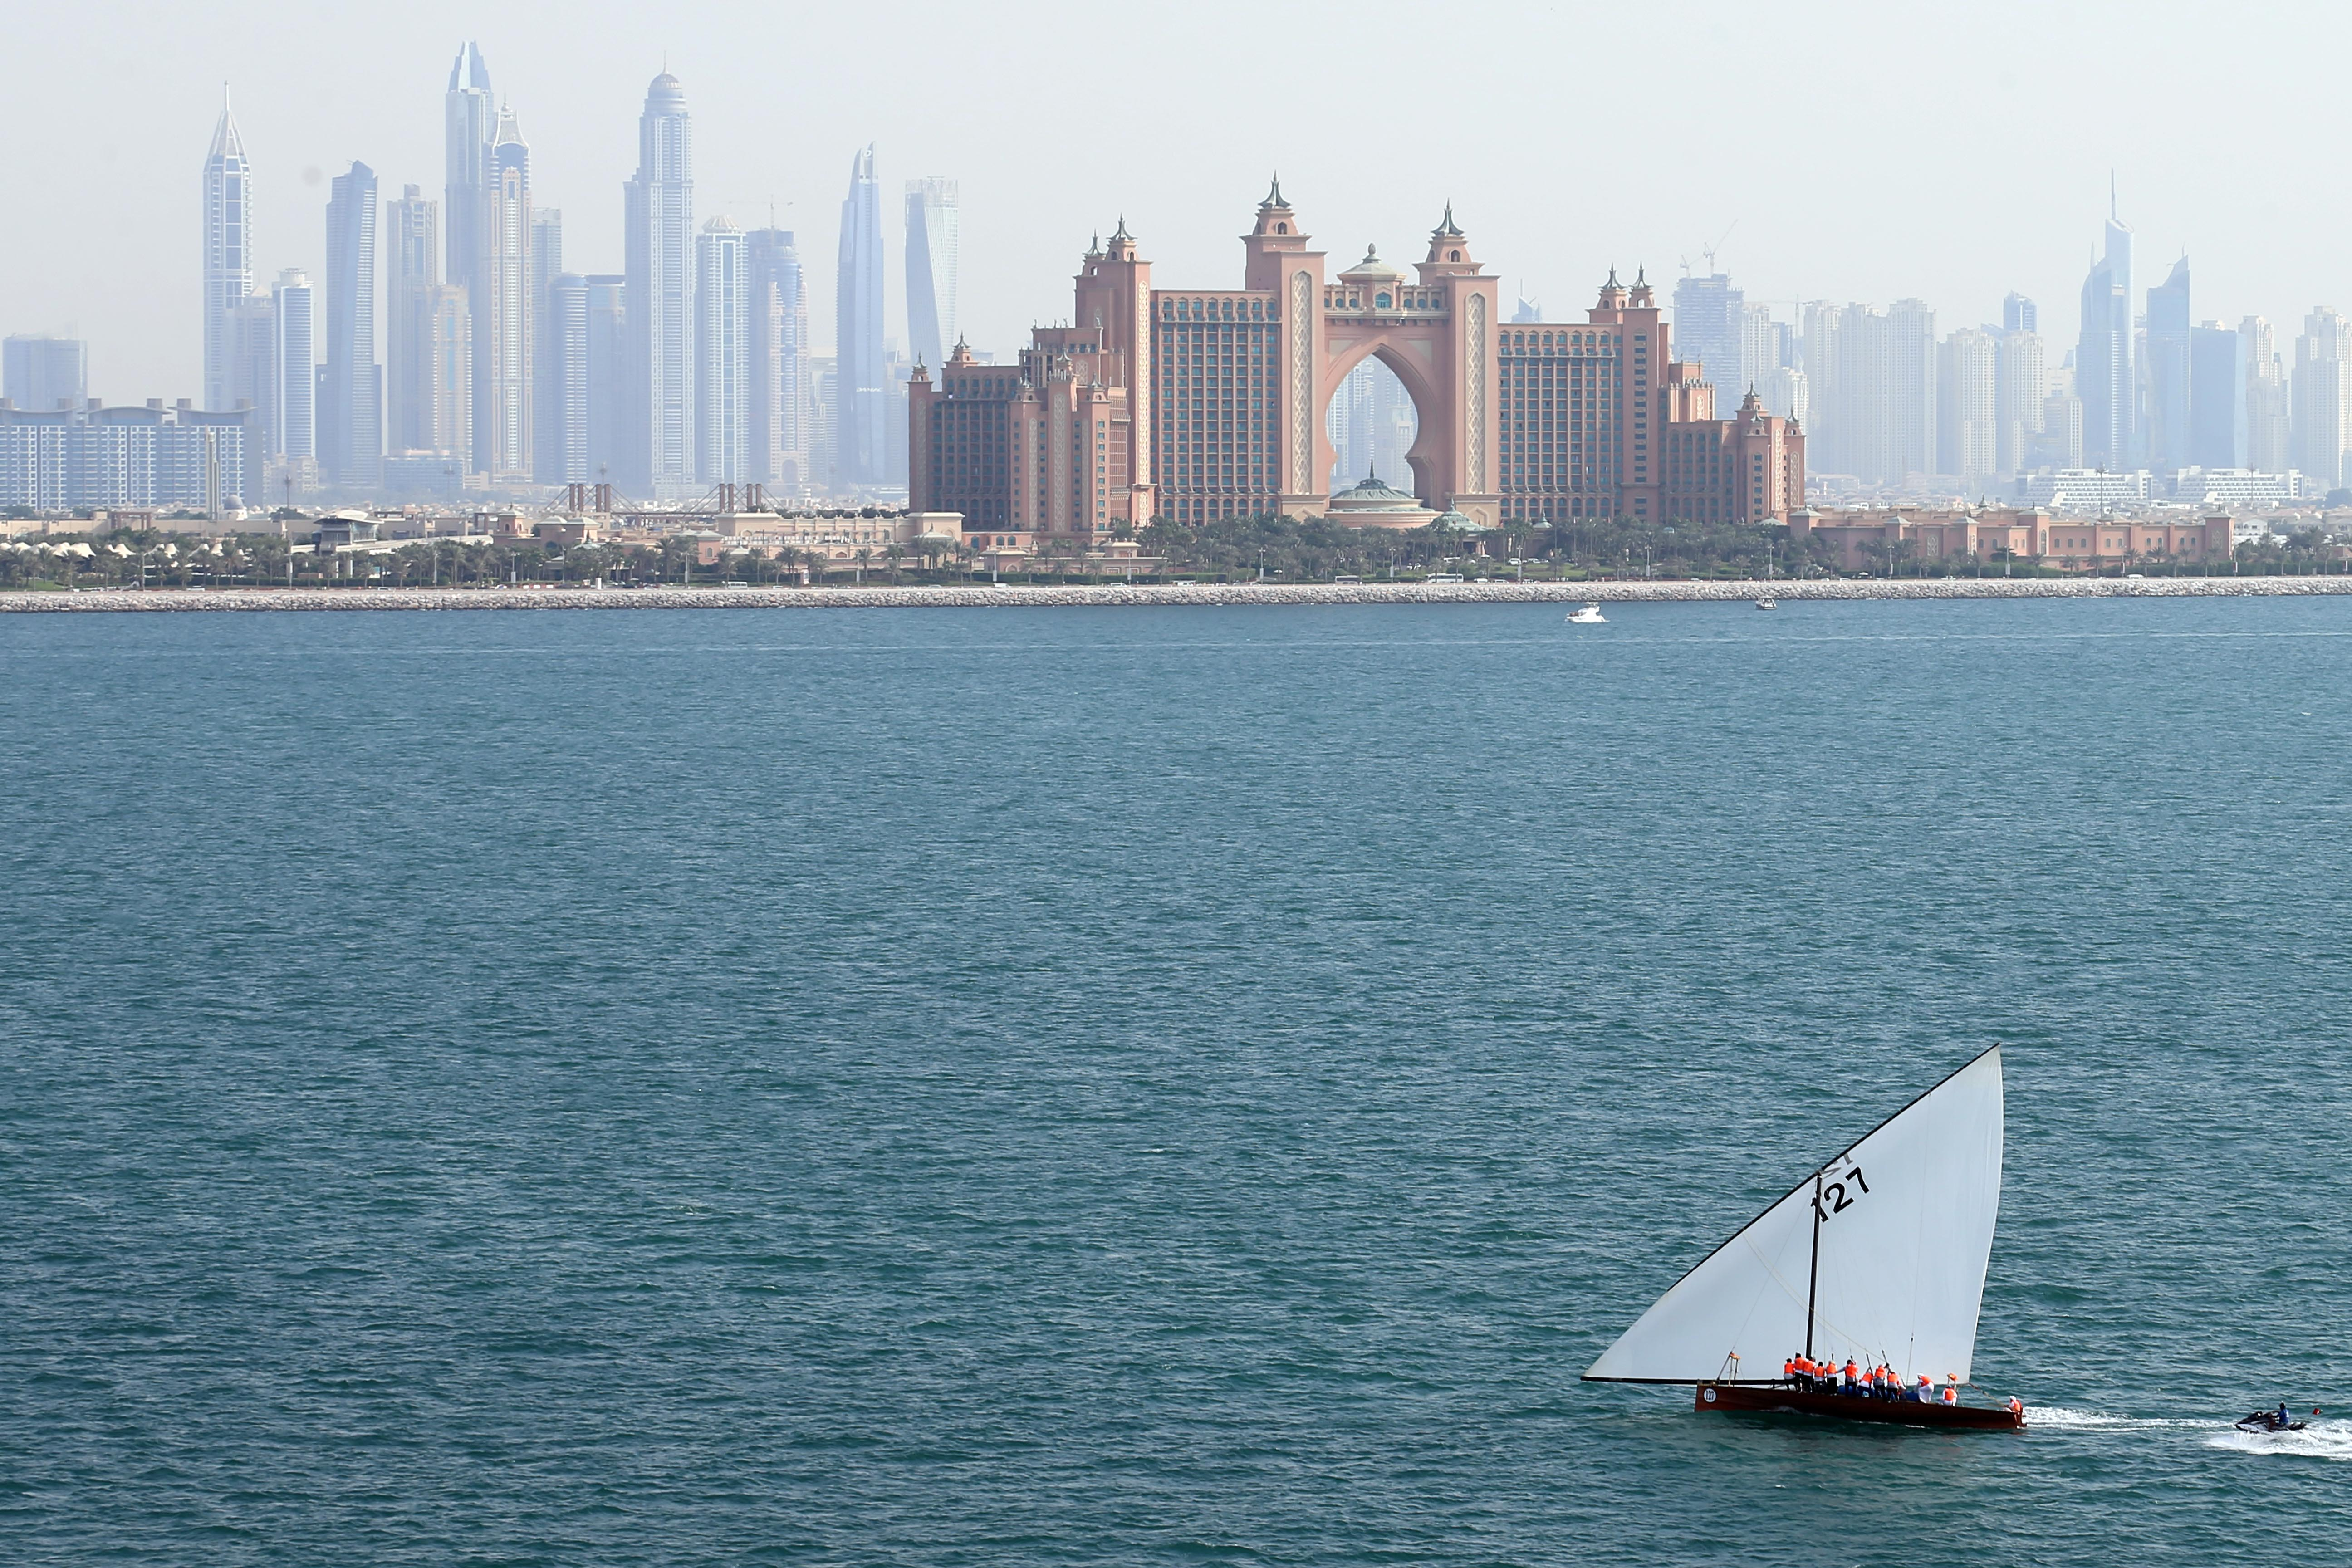 Registration for 60ft Dhow Sailing Race closes today